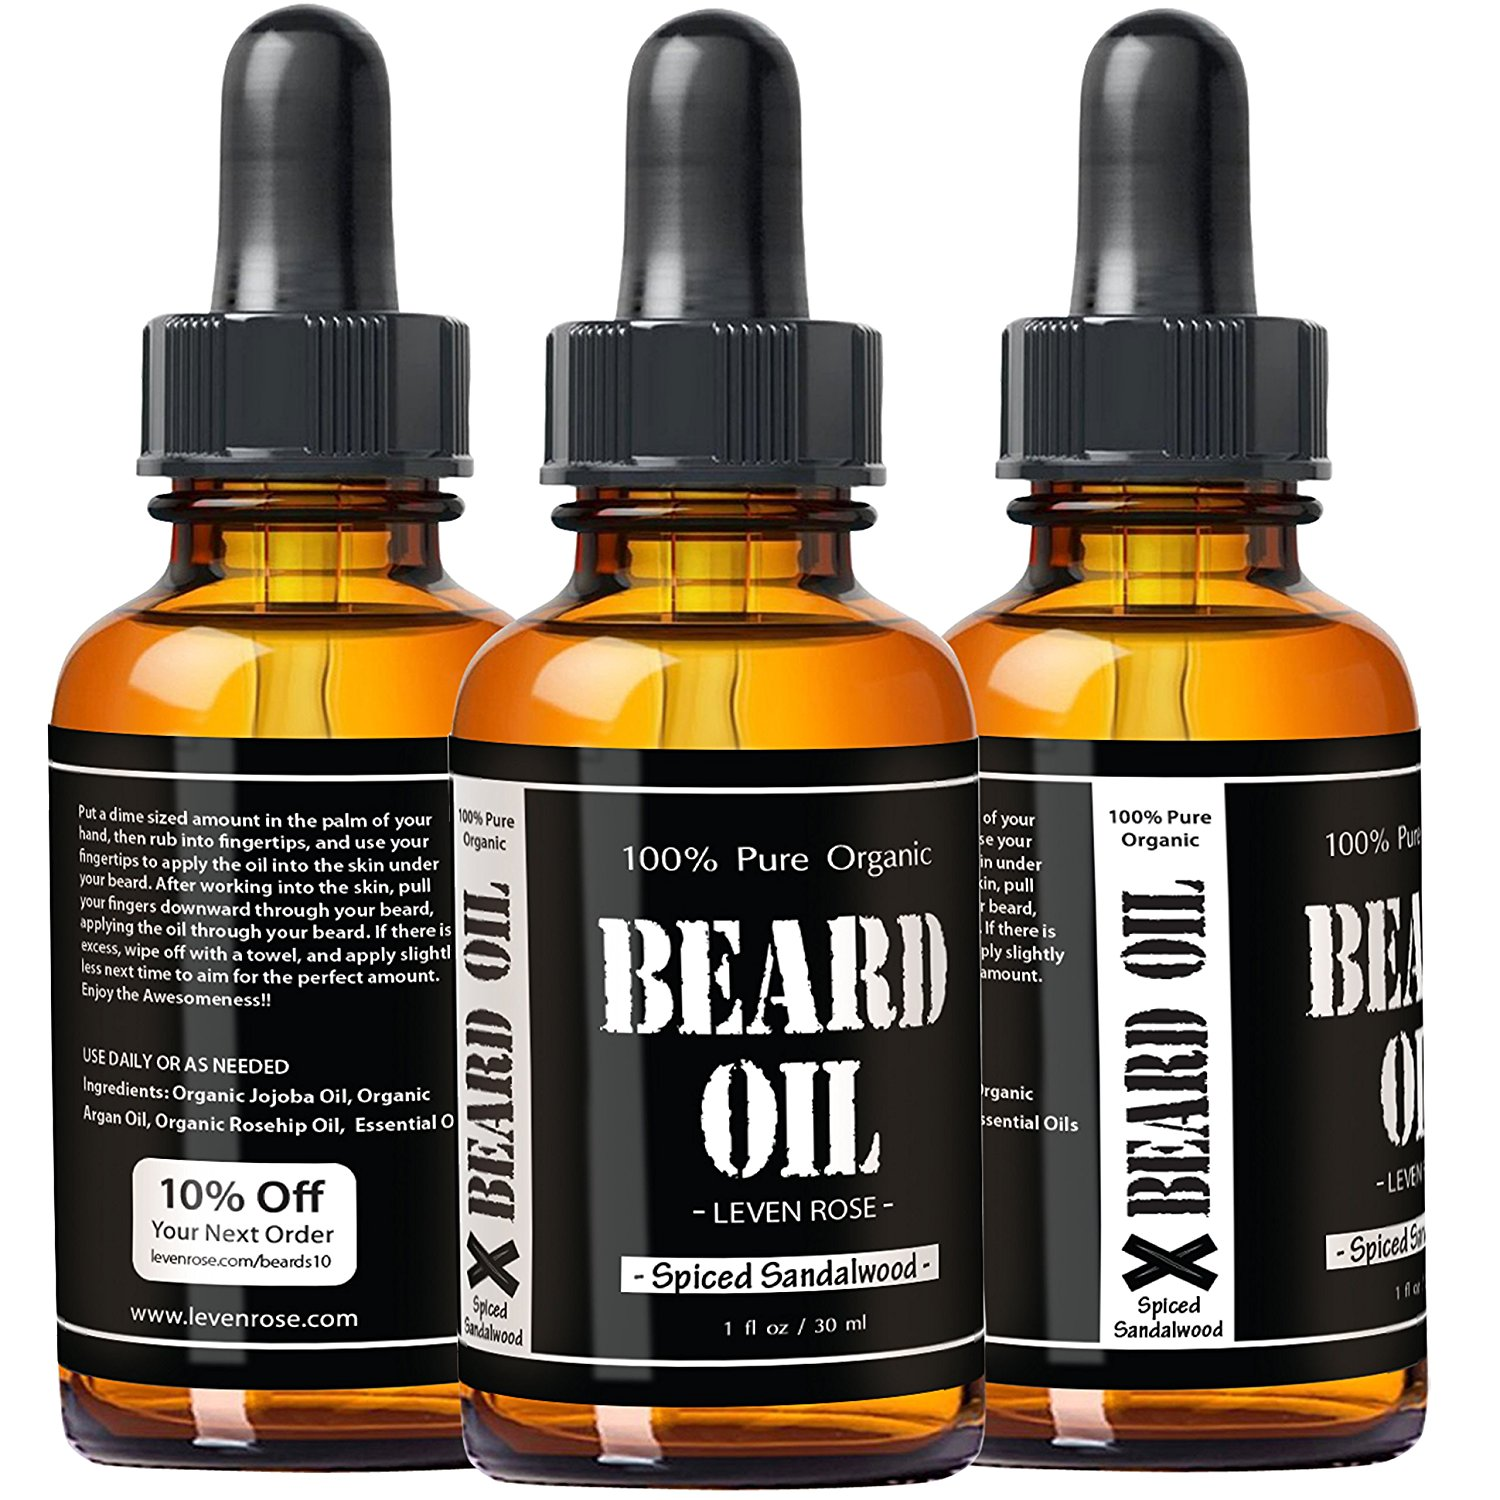 17 Beard Oil Recipes You Can Make At Home Beard Oil Recipes